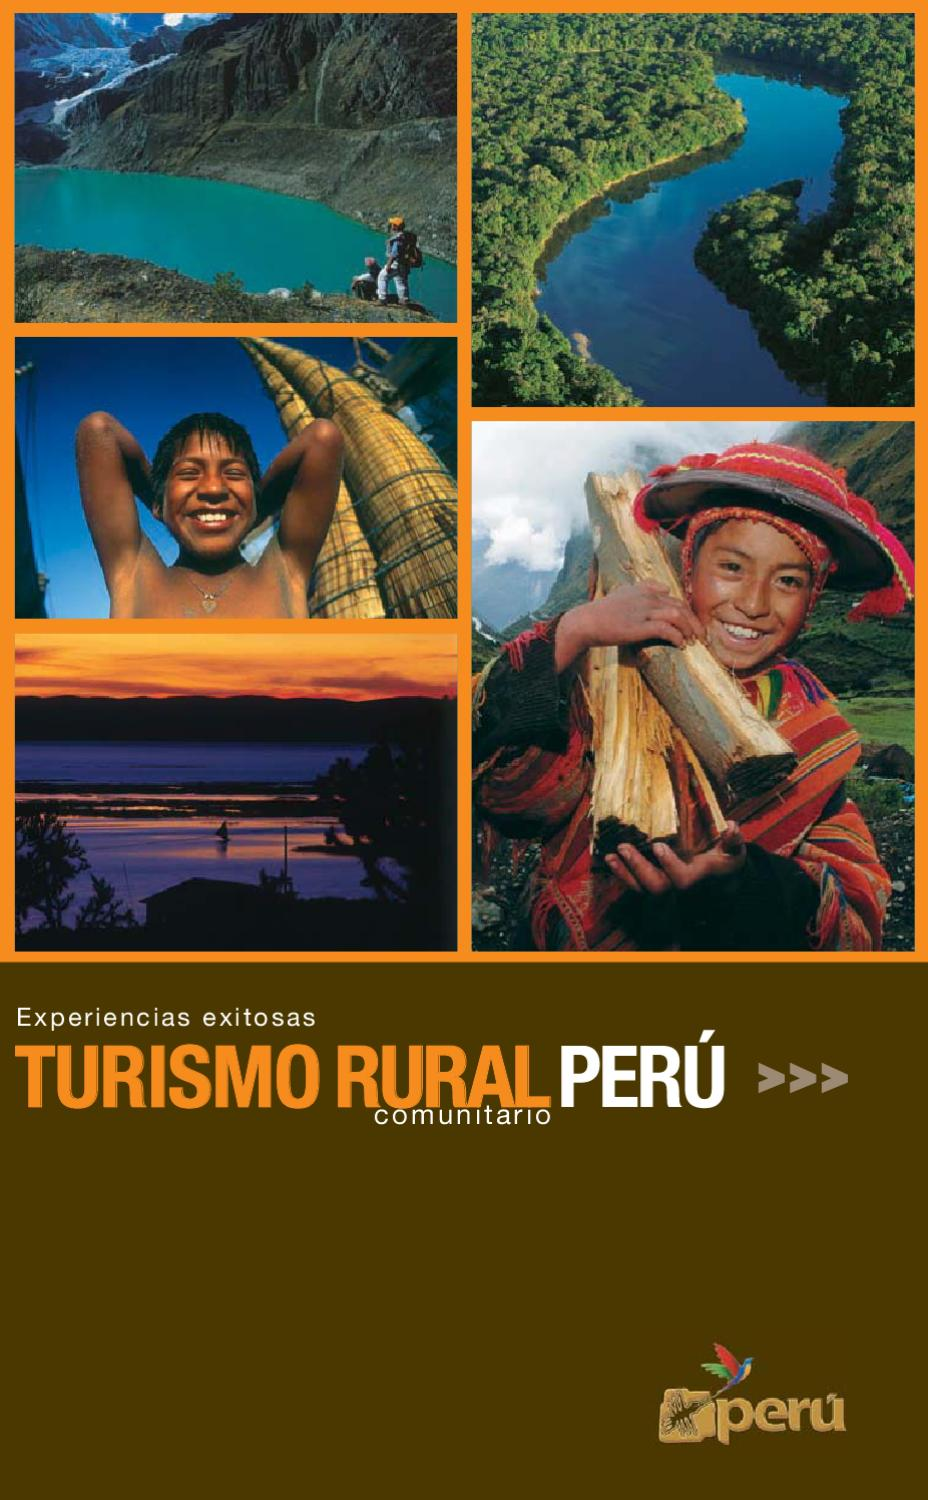 Turismo Rural Perú by www.innovaperuconsulting.com - issuu 02e4f71d06c